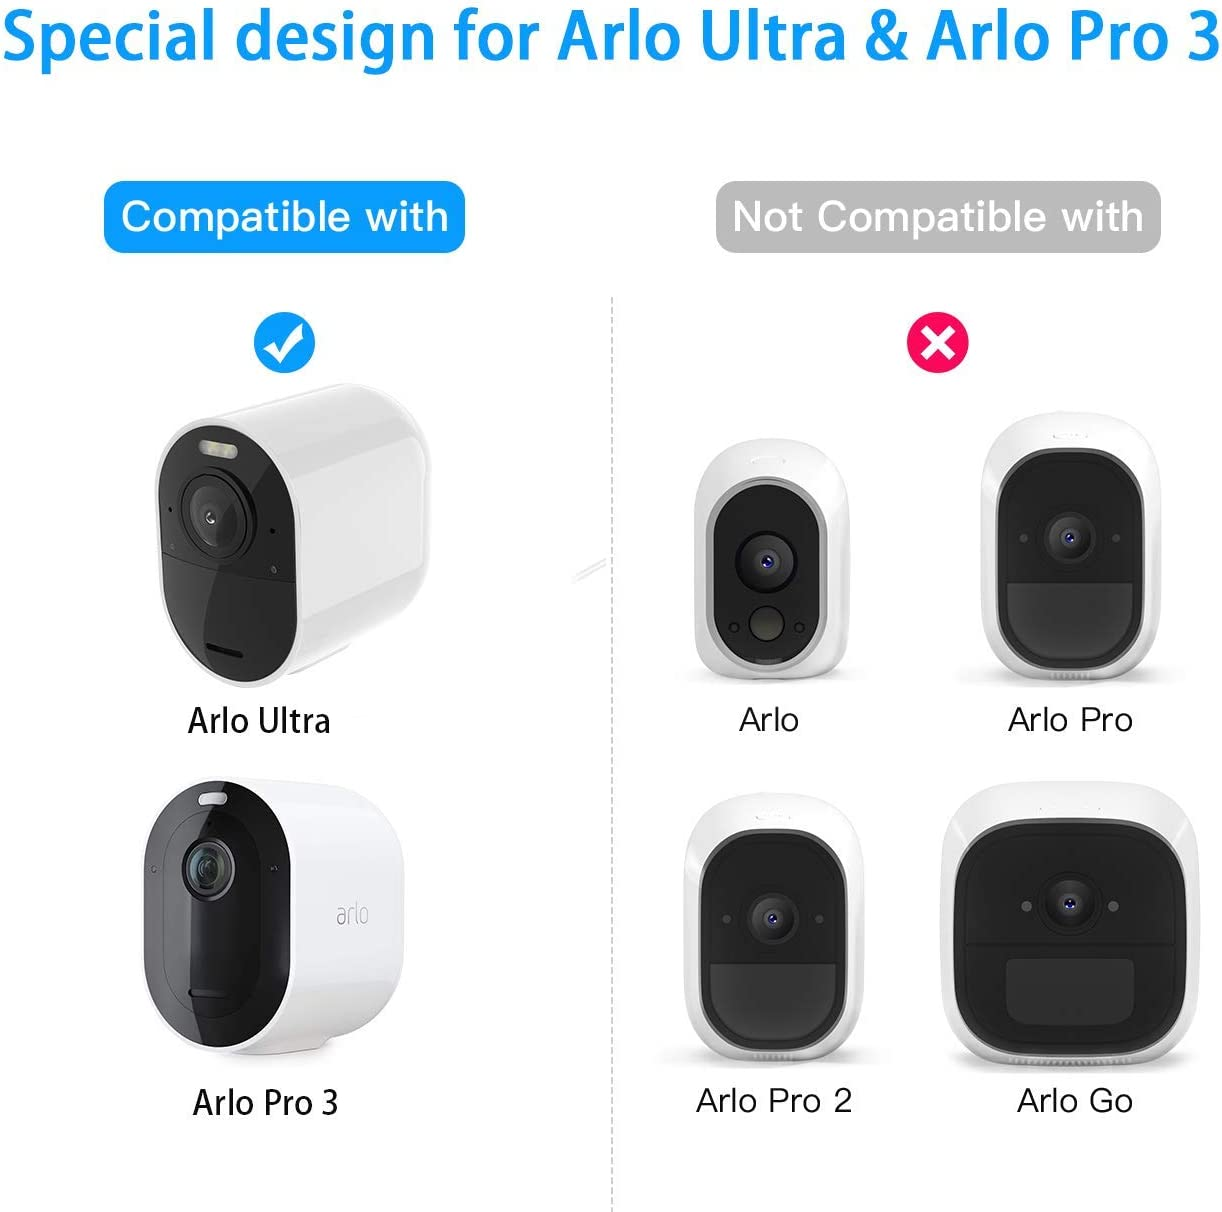 1PACK Continuous Faster Charging Koroao 30ft//9m Charging Cbale for Arlo Pro 3//Arlo Ultra Good Guality and Long-Term Use Power Adapter SupplyCompatible with Arlo Pro 3 Camera